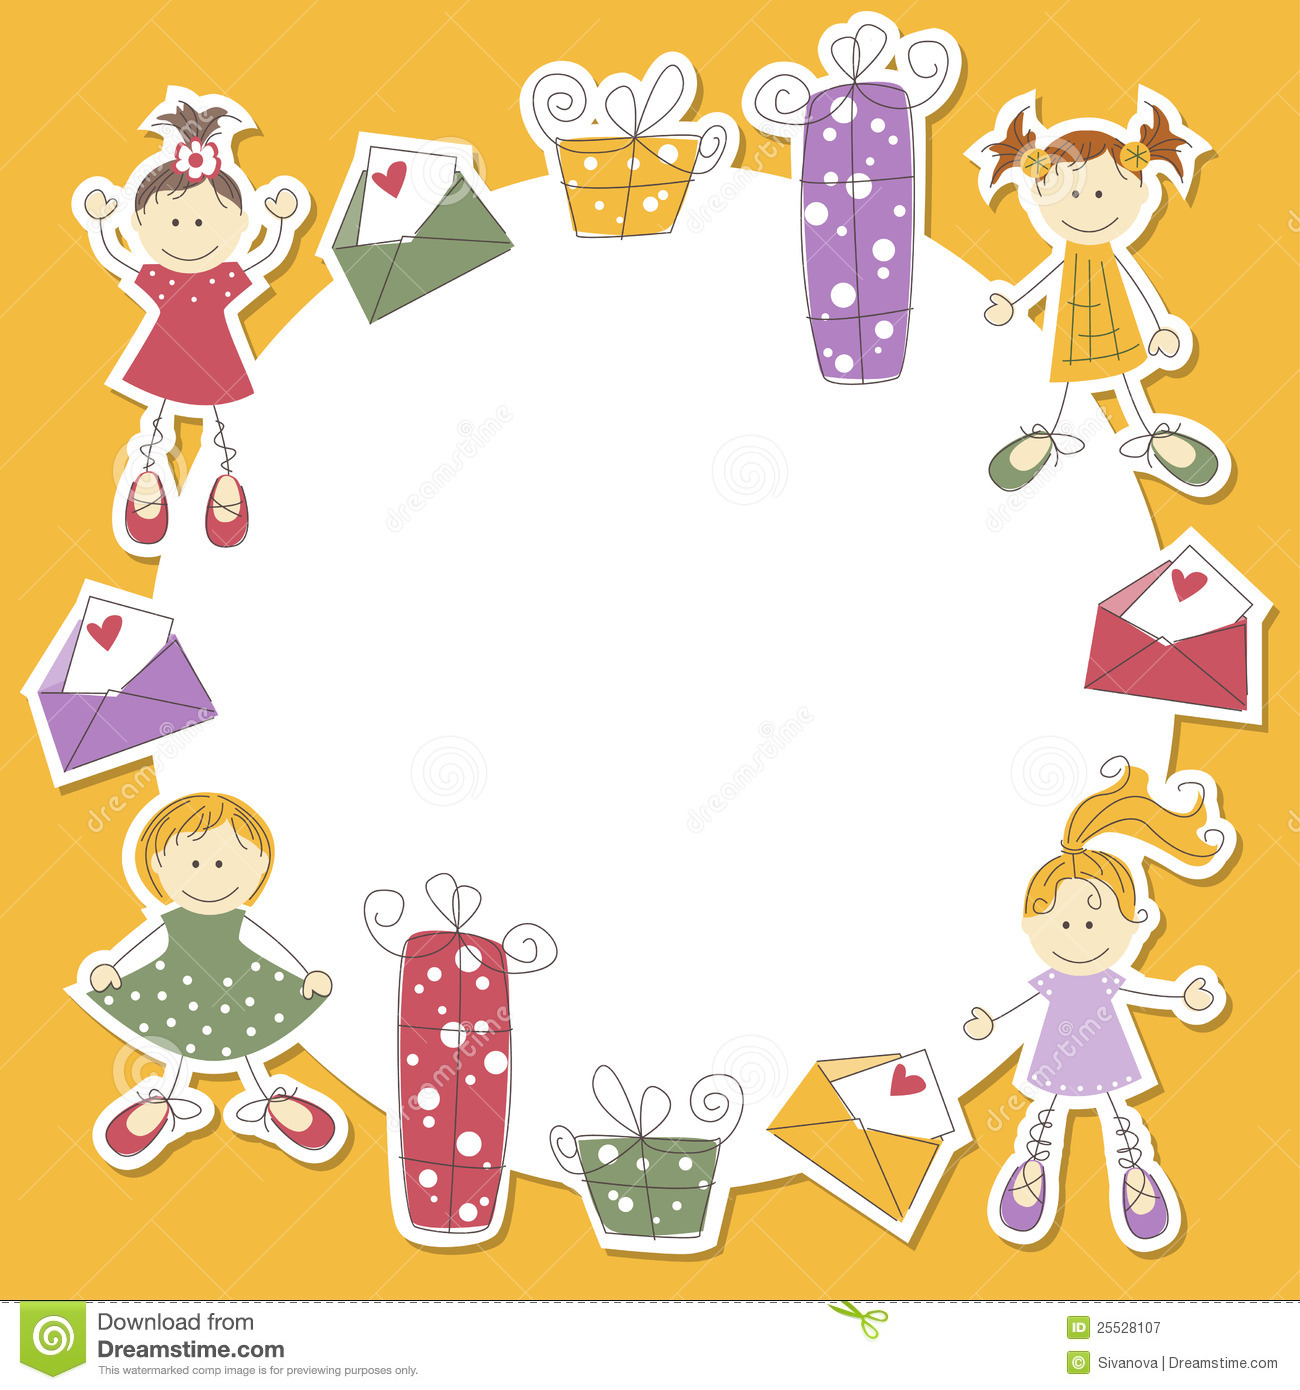 Girl Greeting Card, Vector Illustration Royalty Free Stock Photography ...